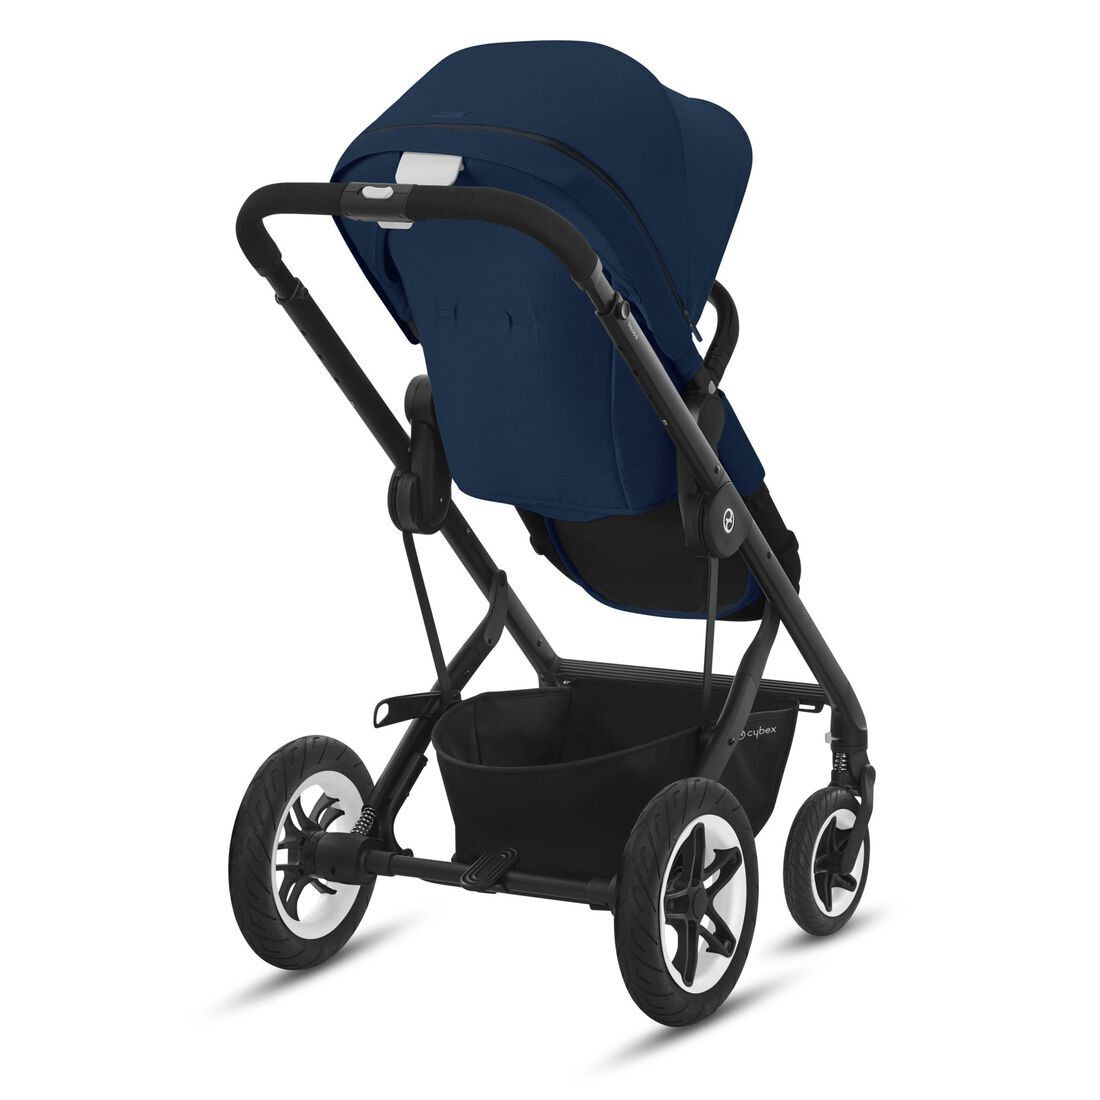 CYBEX Talos S 2-in-1 - Navy Blue in Navy Blue large image number 6